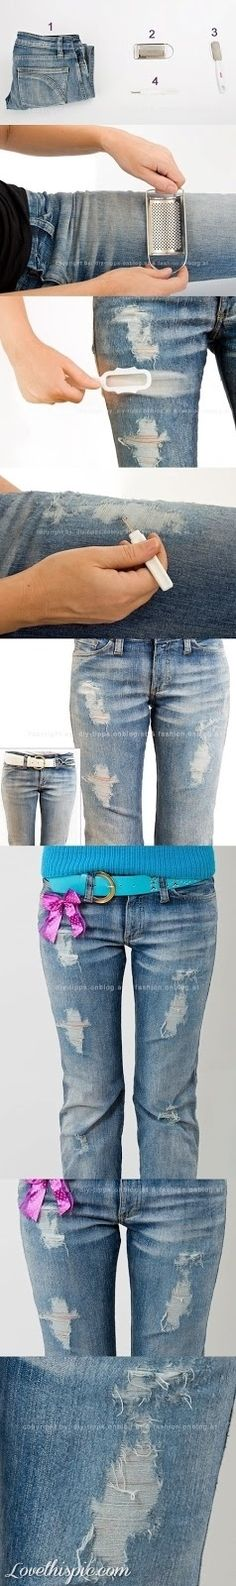 DIY Ripped Jeans Look crafts craft ideas easy crafts diy ideas diy crafts diy clothes easy diy fun diy craft clothes craft fashion fashion diy diy jeans craft jeans